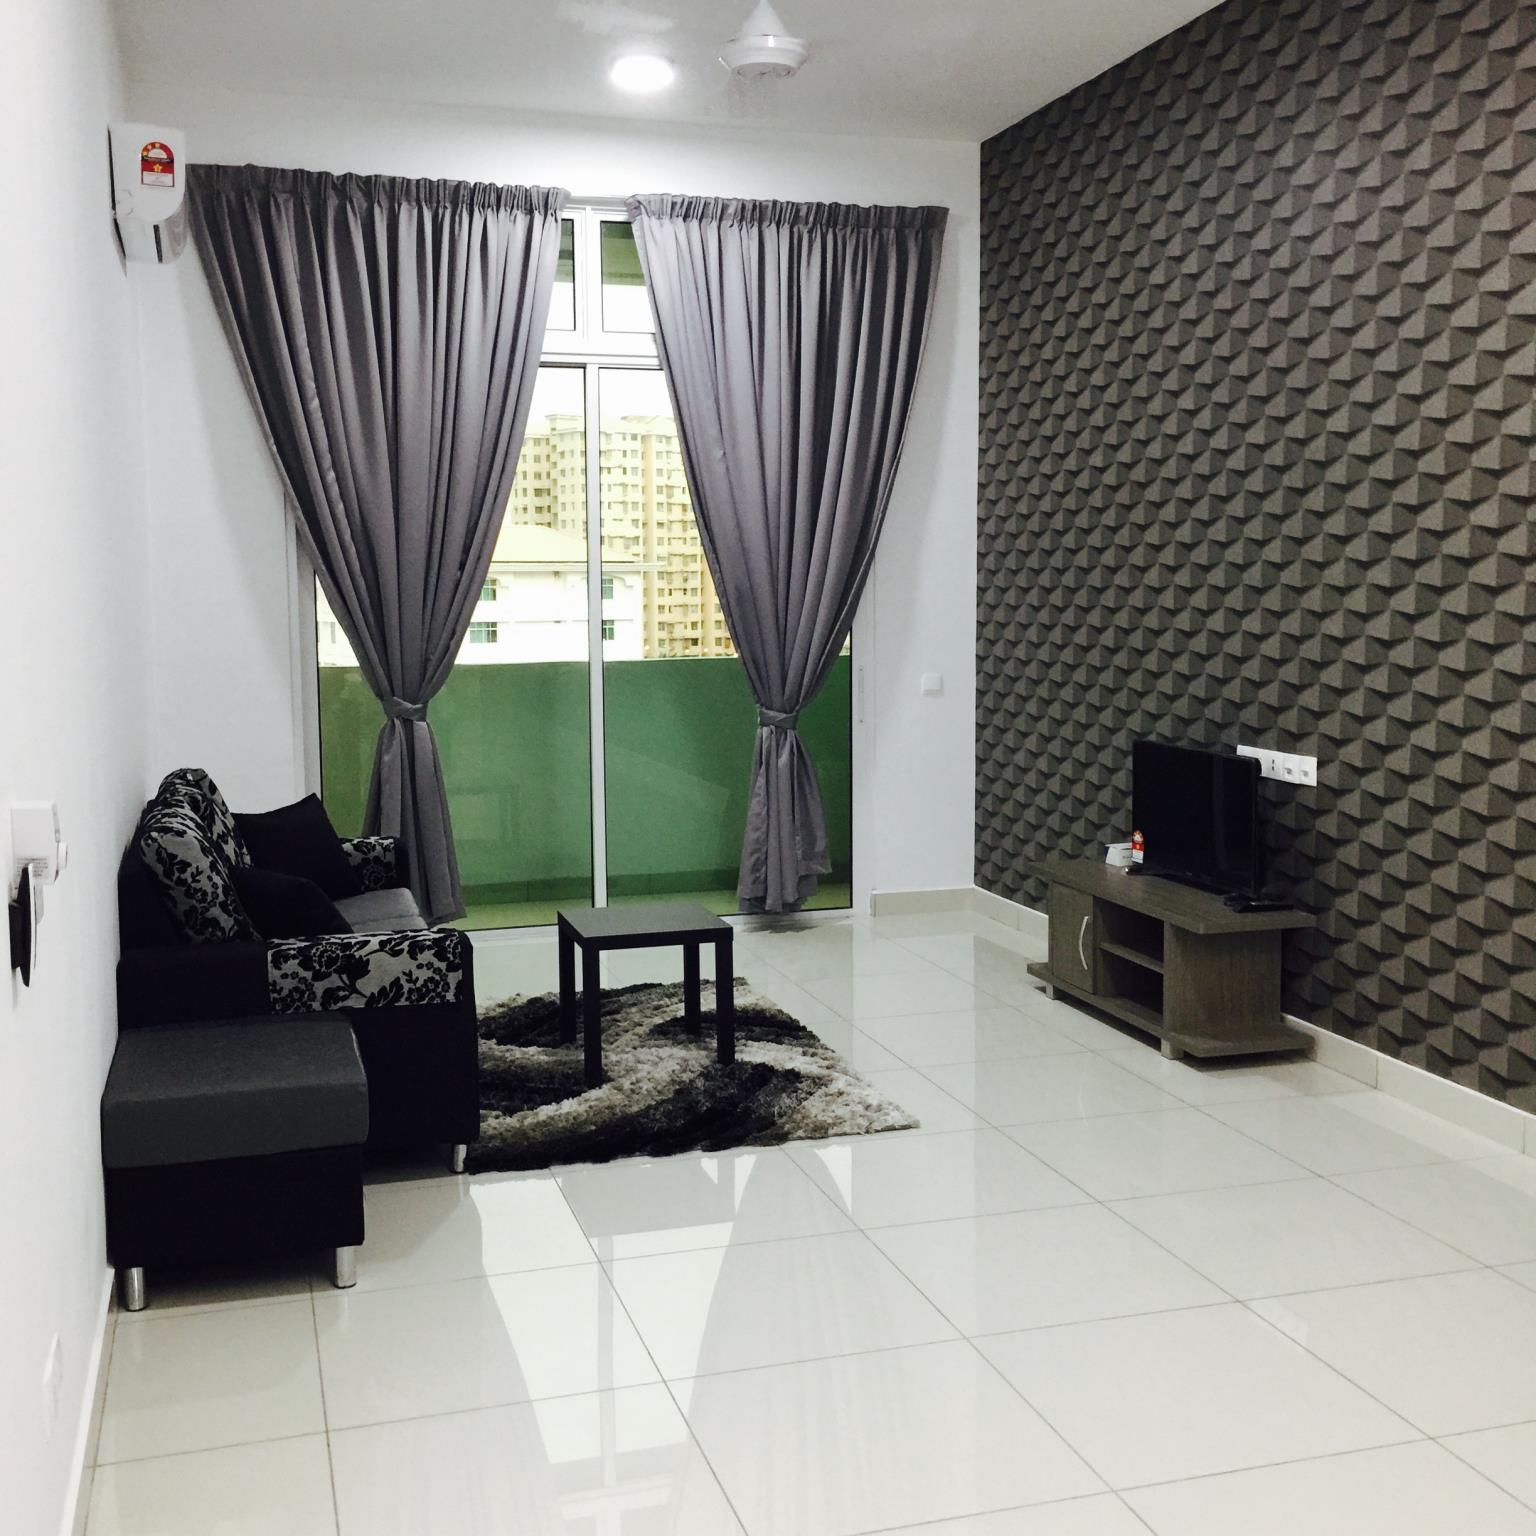 Penang Airport Guesthouse